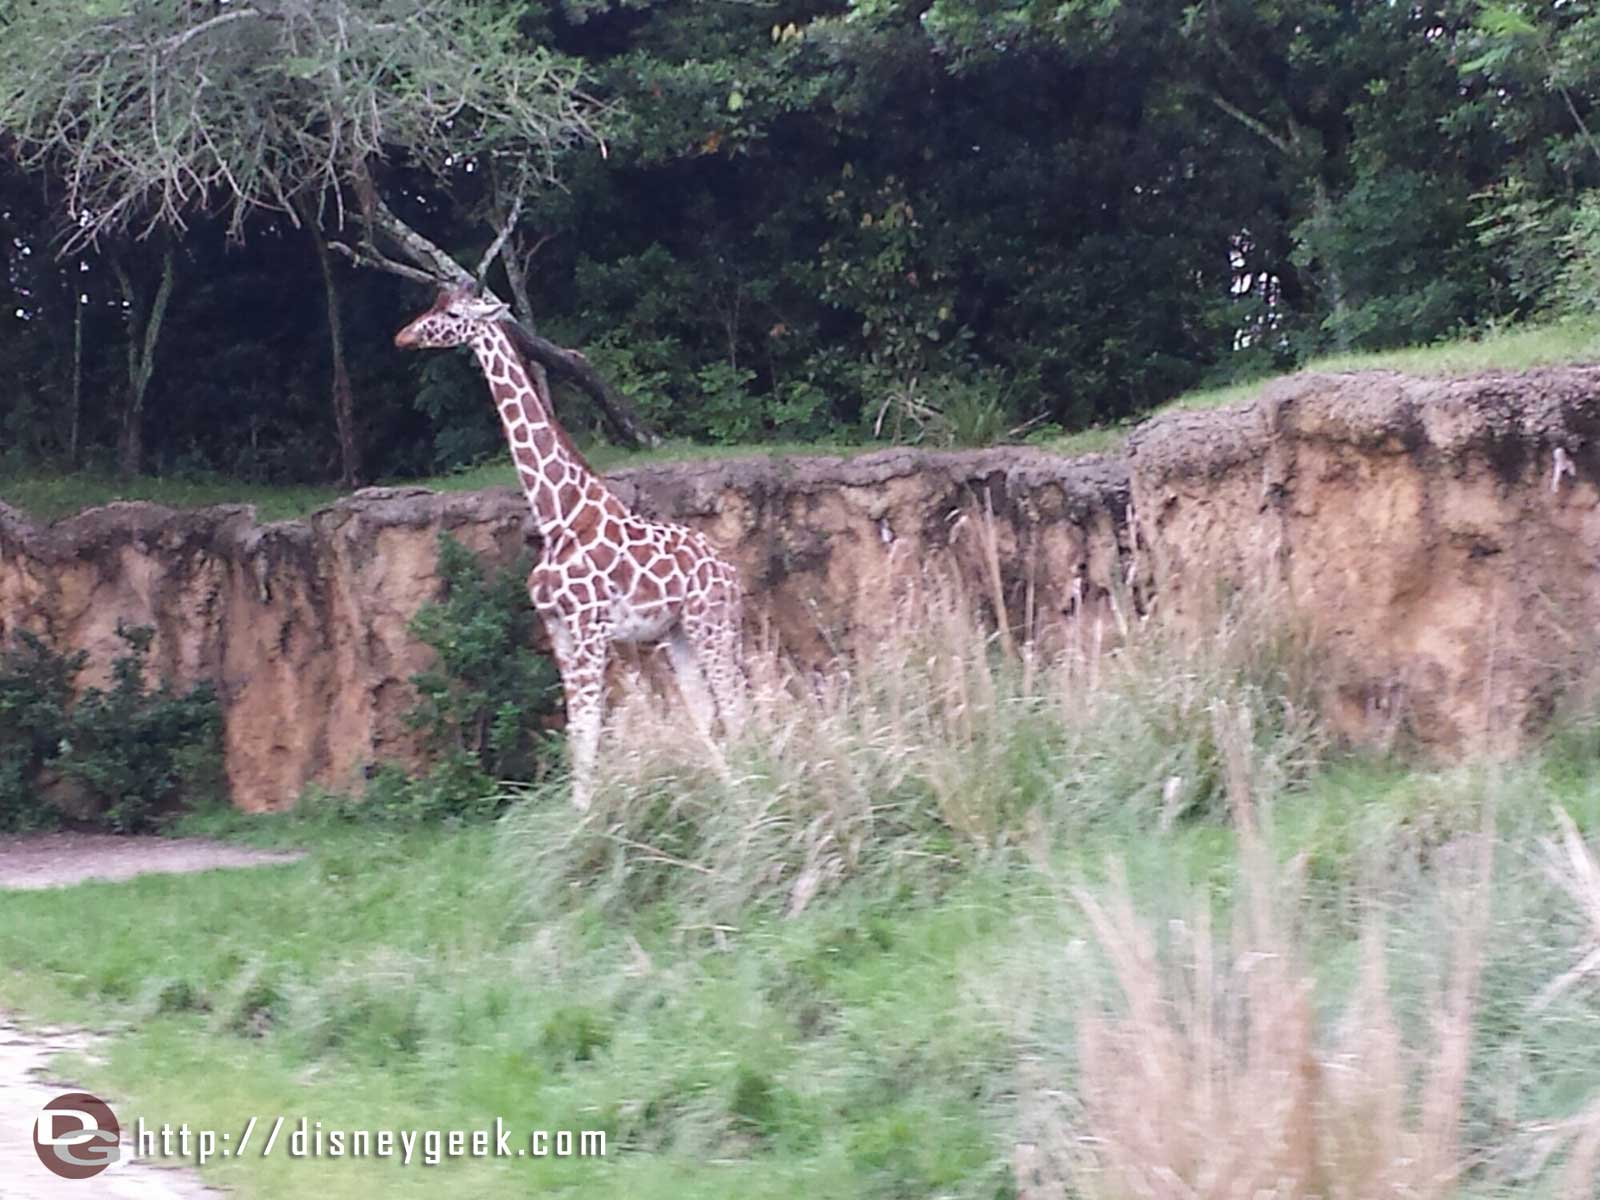 A giraffe on the Kilamanjaro Safari at Disney's Animal Kingdom